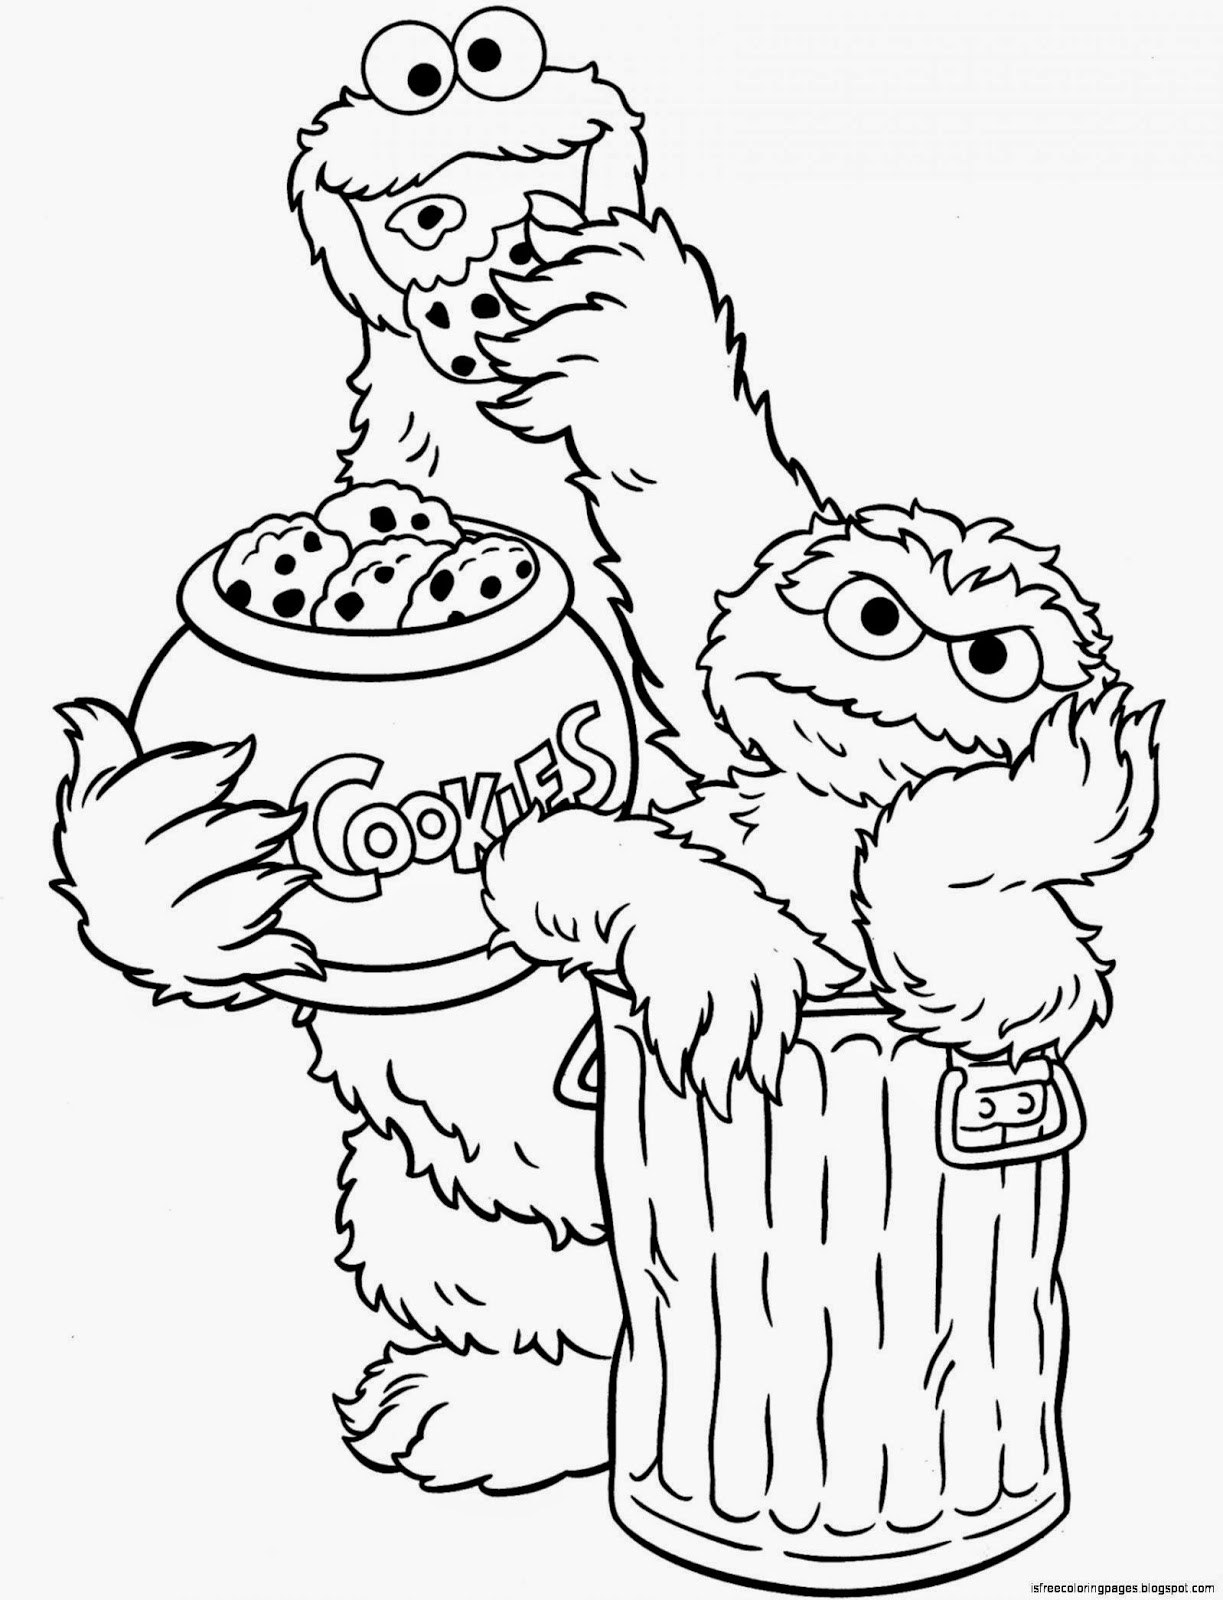 Sesame Street Drawing at GetDrawings.com | Free for personal use ...